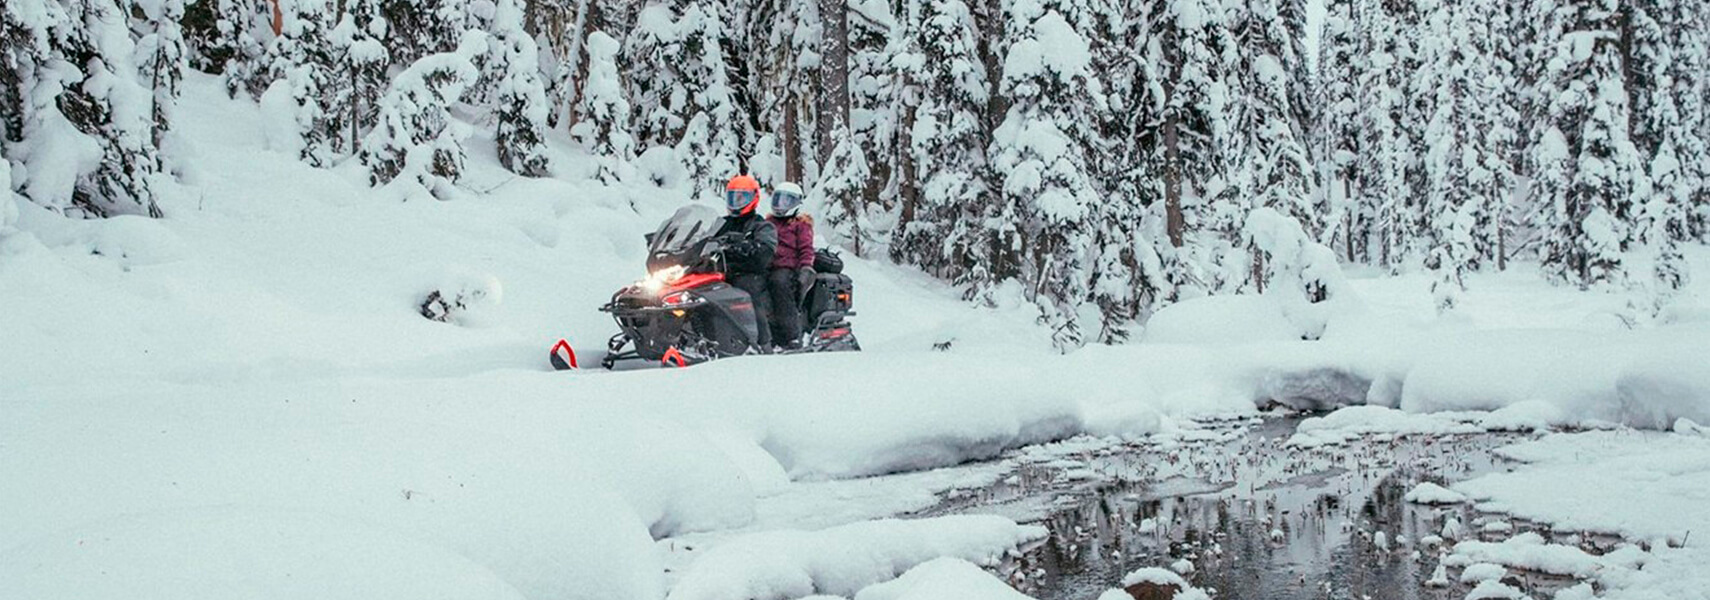 Ski-Doo - 2020 Expedition Xtreme